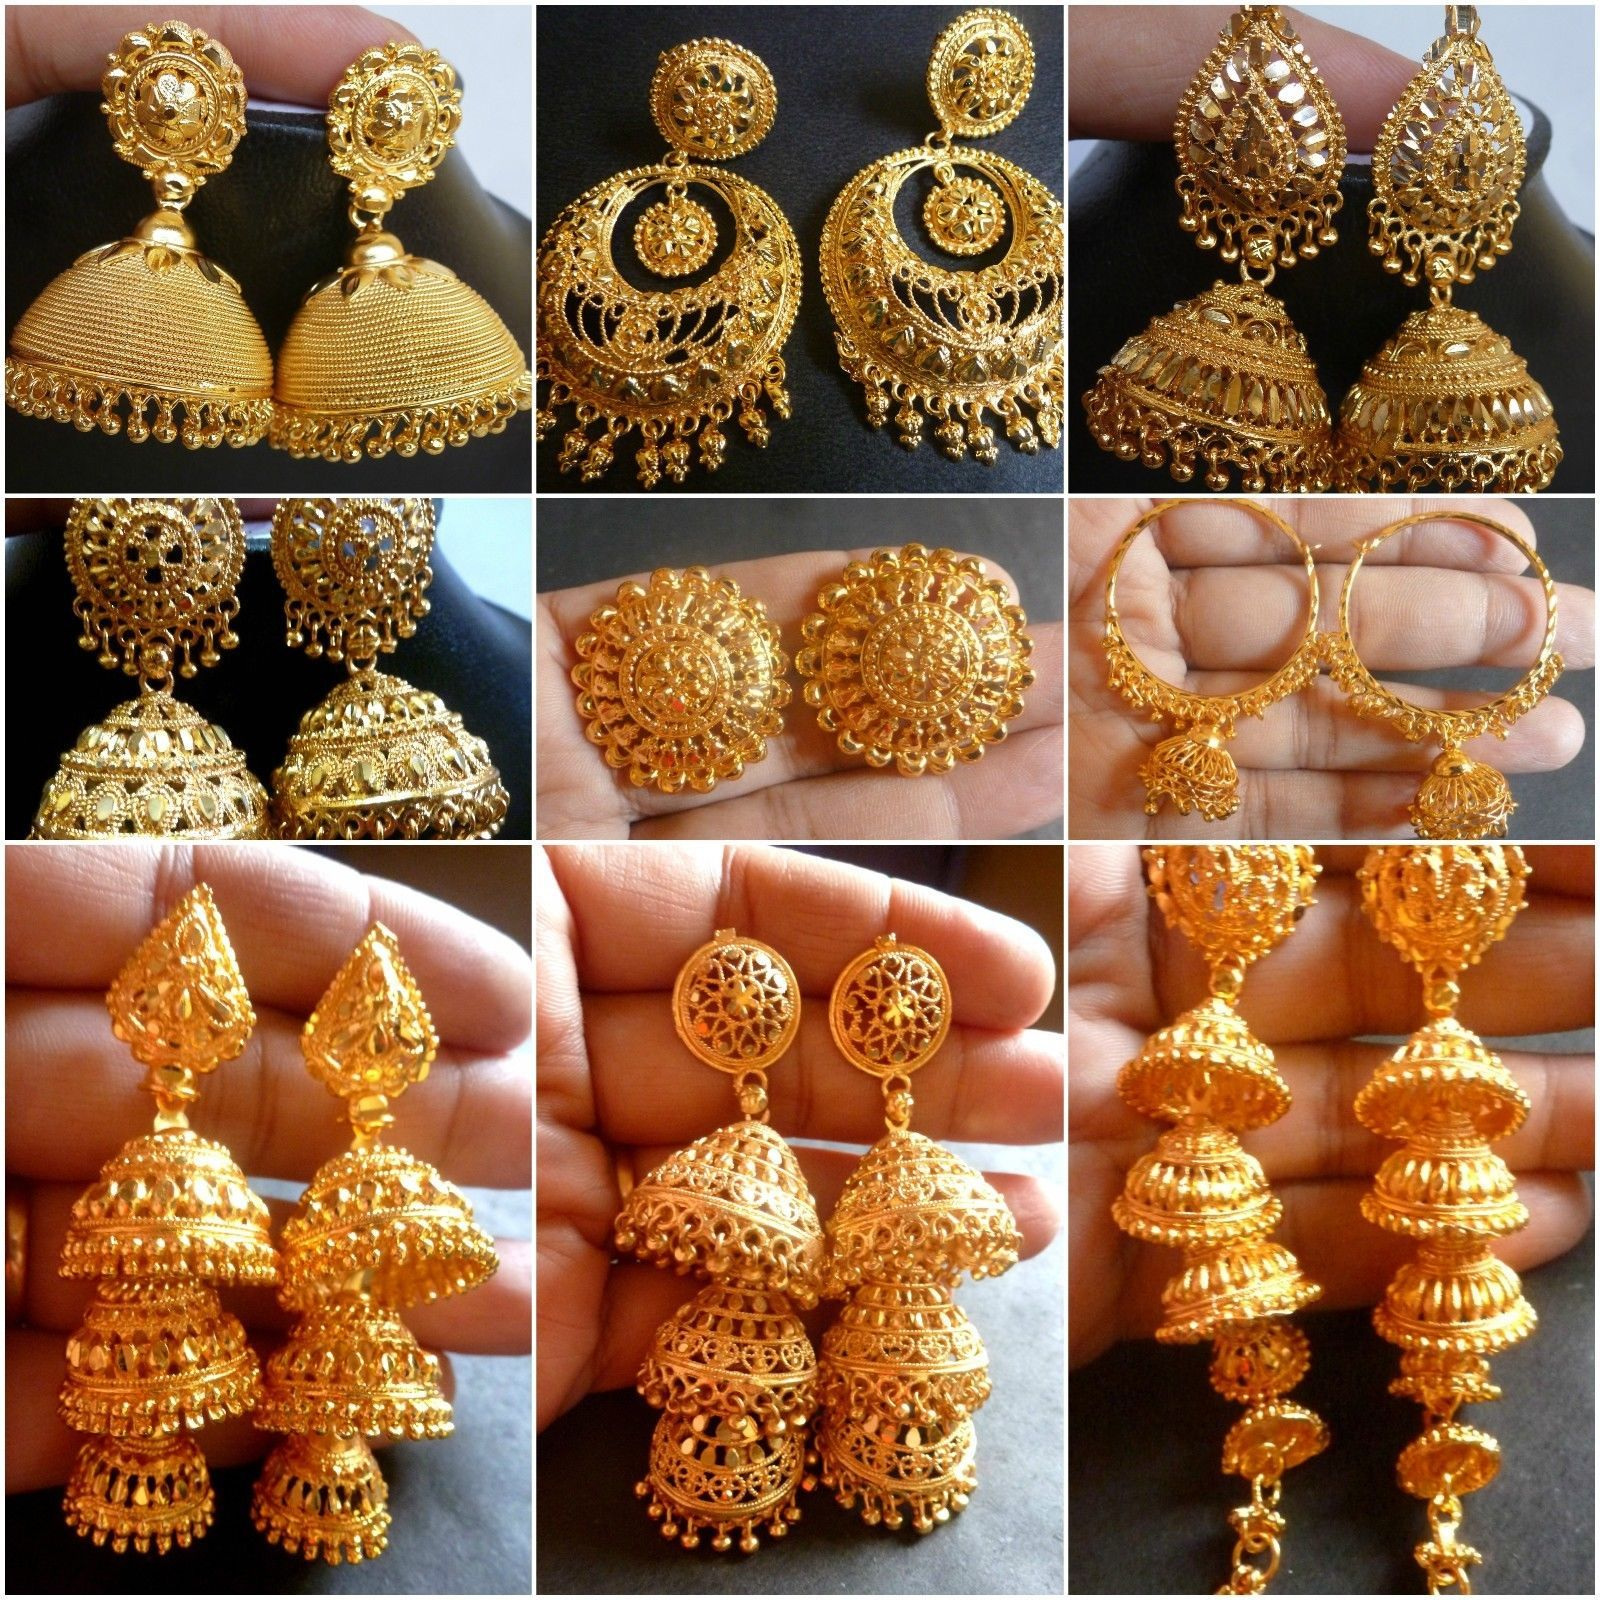 Take a look at the Muslim bridal collection of earrings.